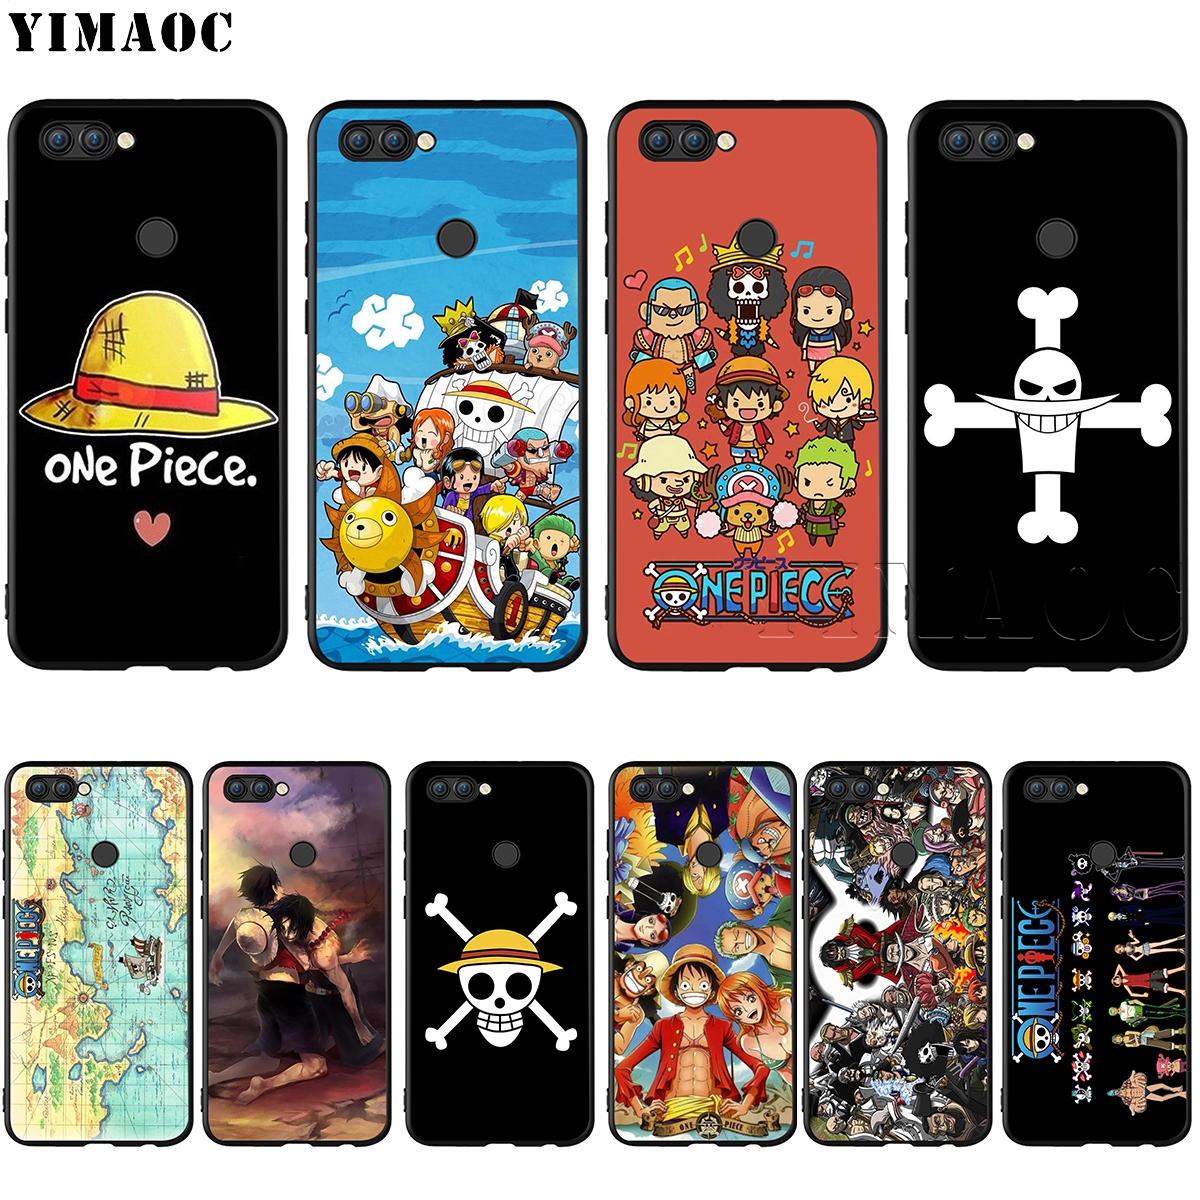 Half-wrapped Case For Huawei P20 P30 Mate 20 Lite Y5 Y6 Prime 2018 P Smart Y7 Pro 2019 Case Cartoon Silicon Cover For Huawei Honor 8a 8x 7a 7c Pro